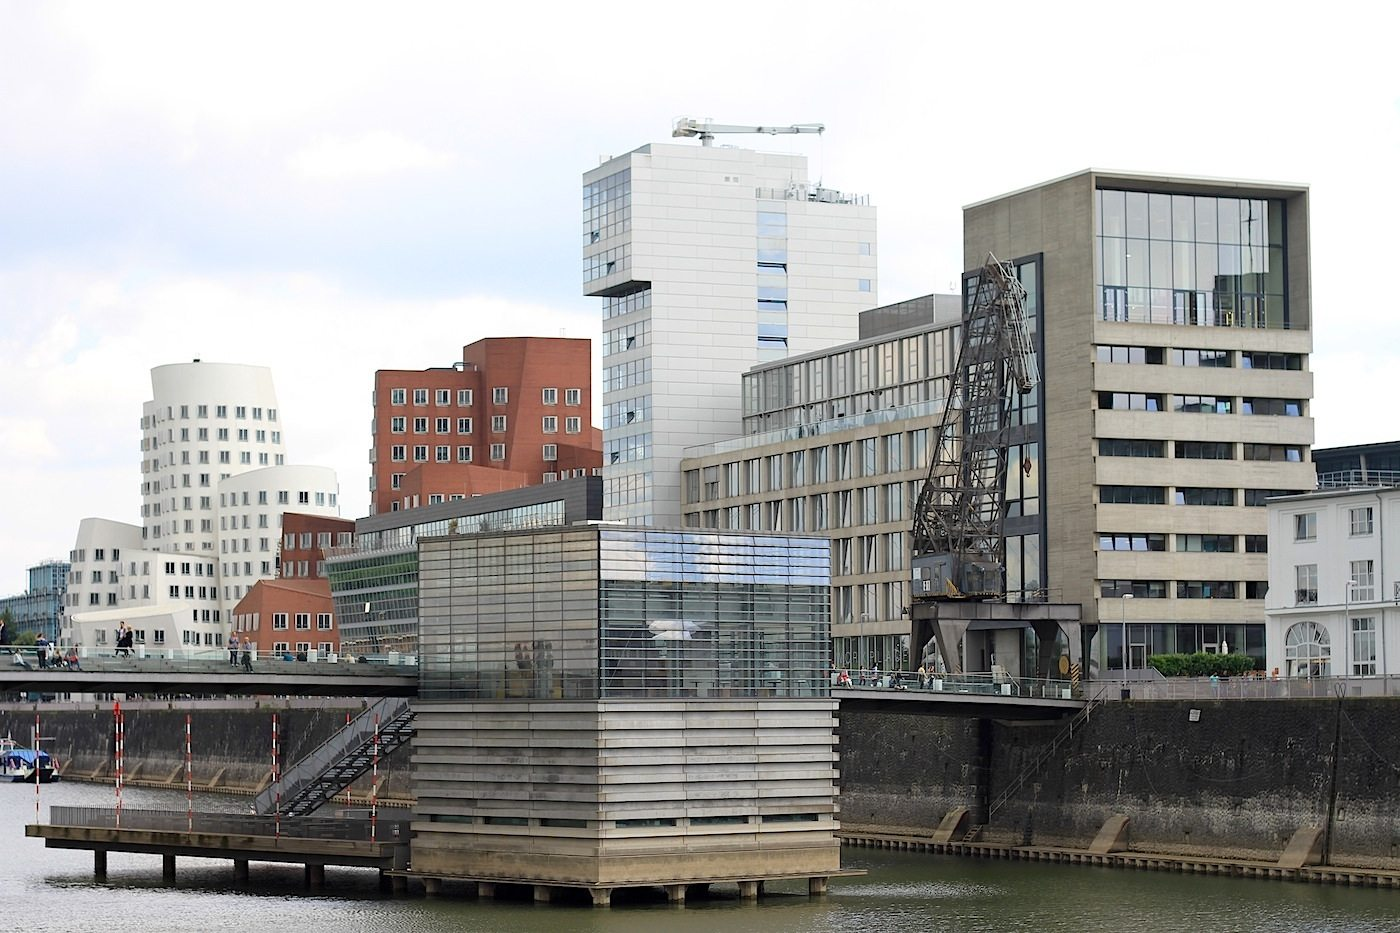 Am Handelshafen.  View from Julo-Levin-Ufer with the Gehry complex (Neuer Zollhof 1–3), the Chipperfield building, the bridge with the pavilion by sop architekten (slapa oberholz pszczulny). The white tower was planned by renowned American architect Steven Holl (with Ingenhoven Overdiek Kahlen + Partner).